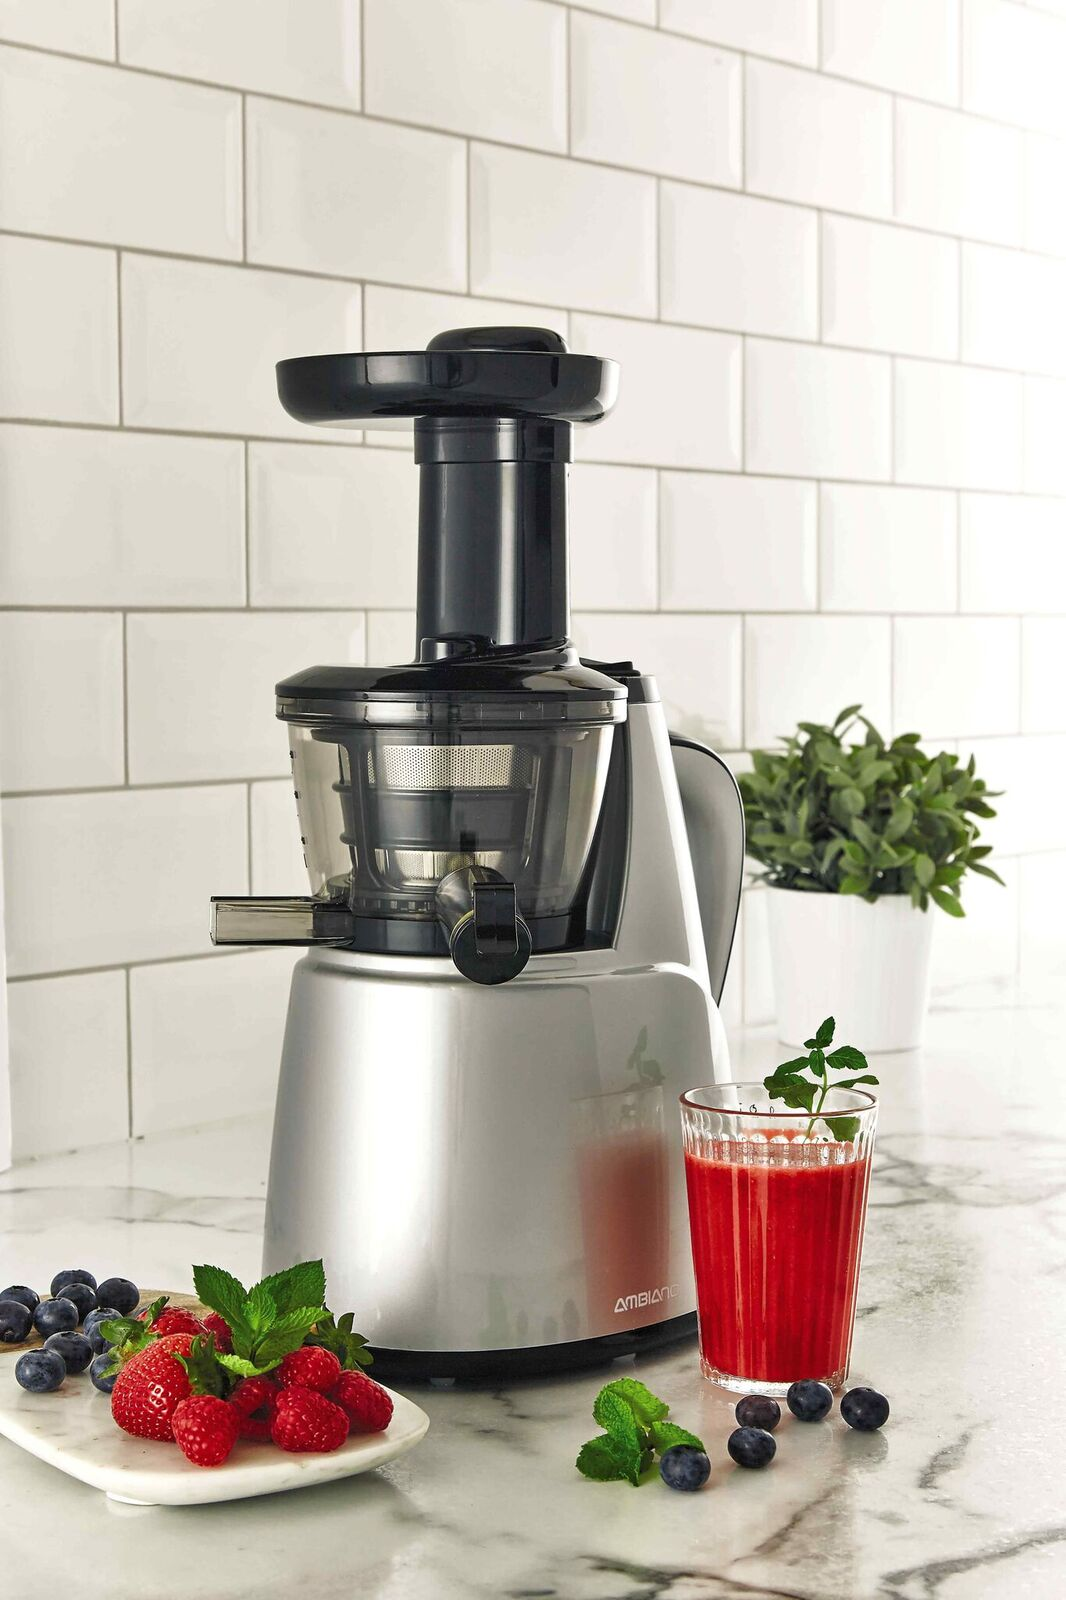 Ambiano Slow Juicer Bewertung : Aldi has some great household items coming soon Her.ie